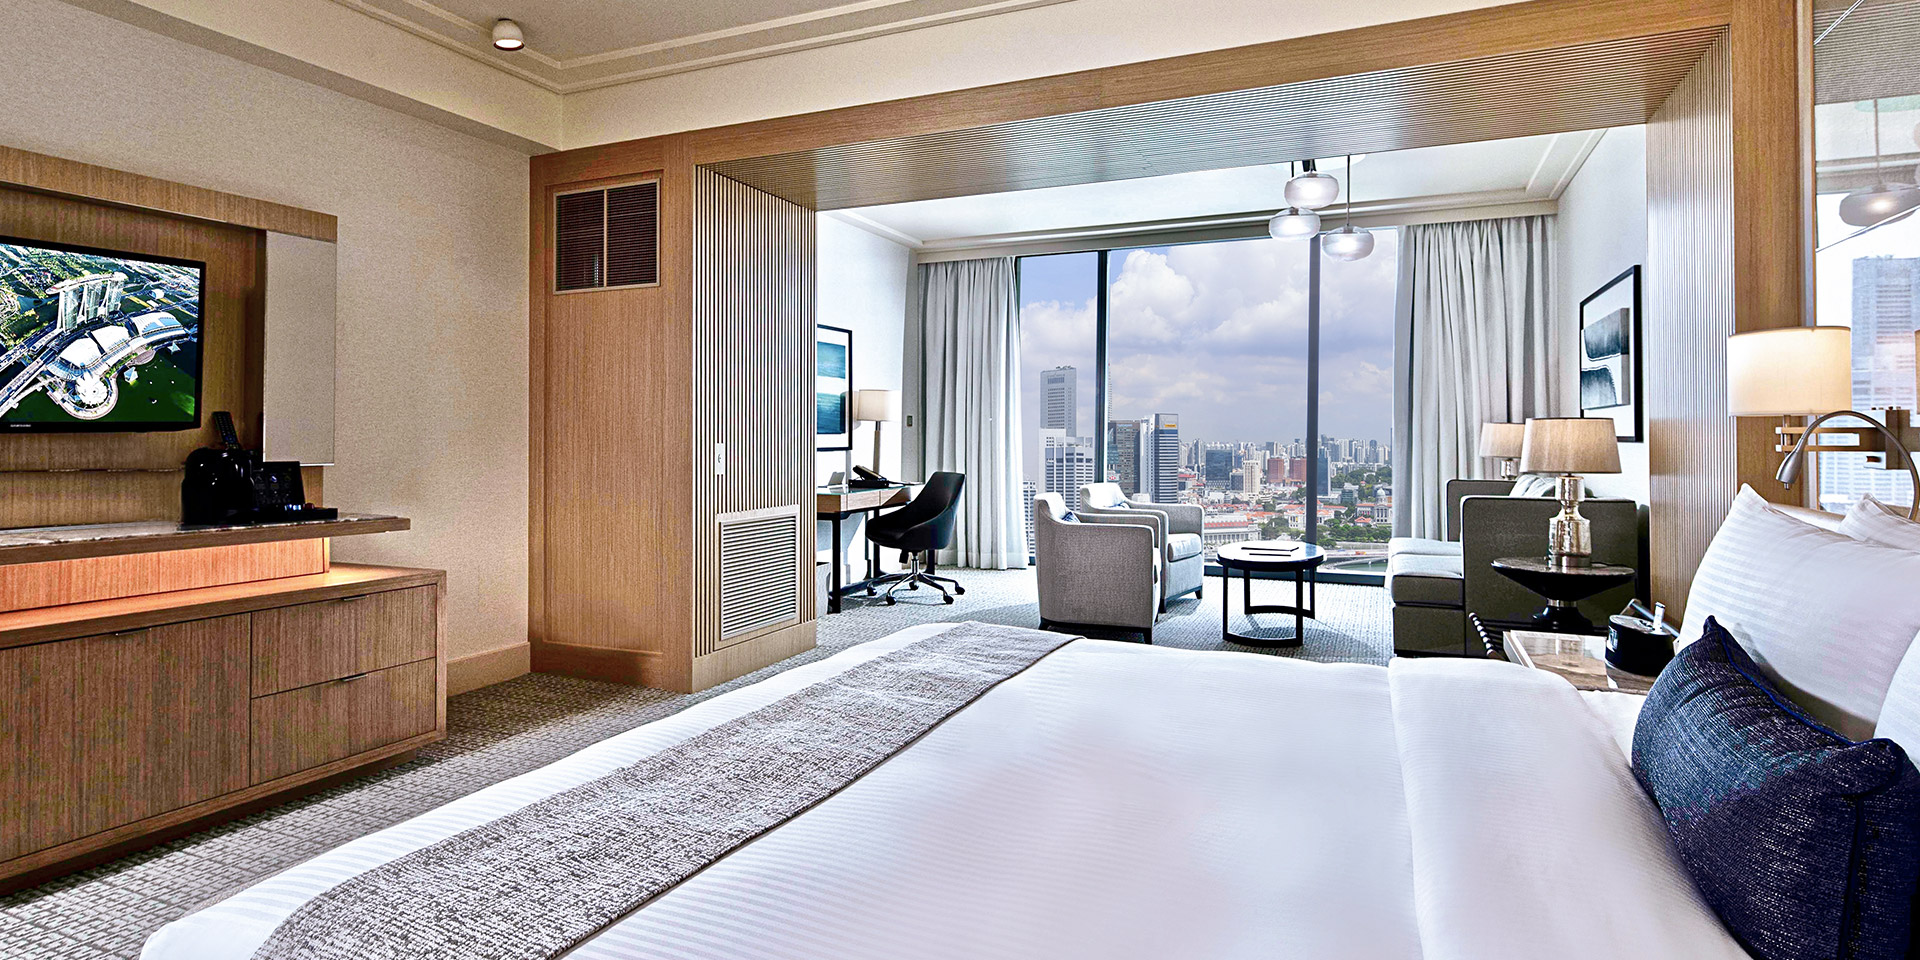 Canapé King Size Club Room In Marina Bay Sands Singapore Hotel